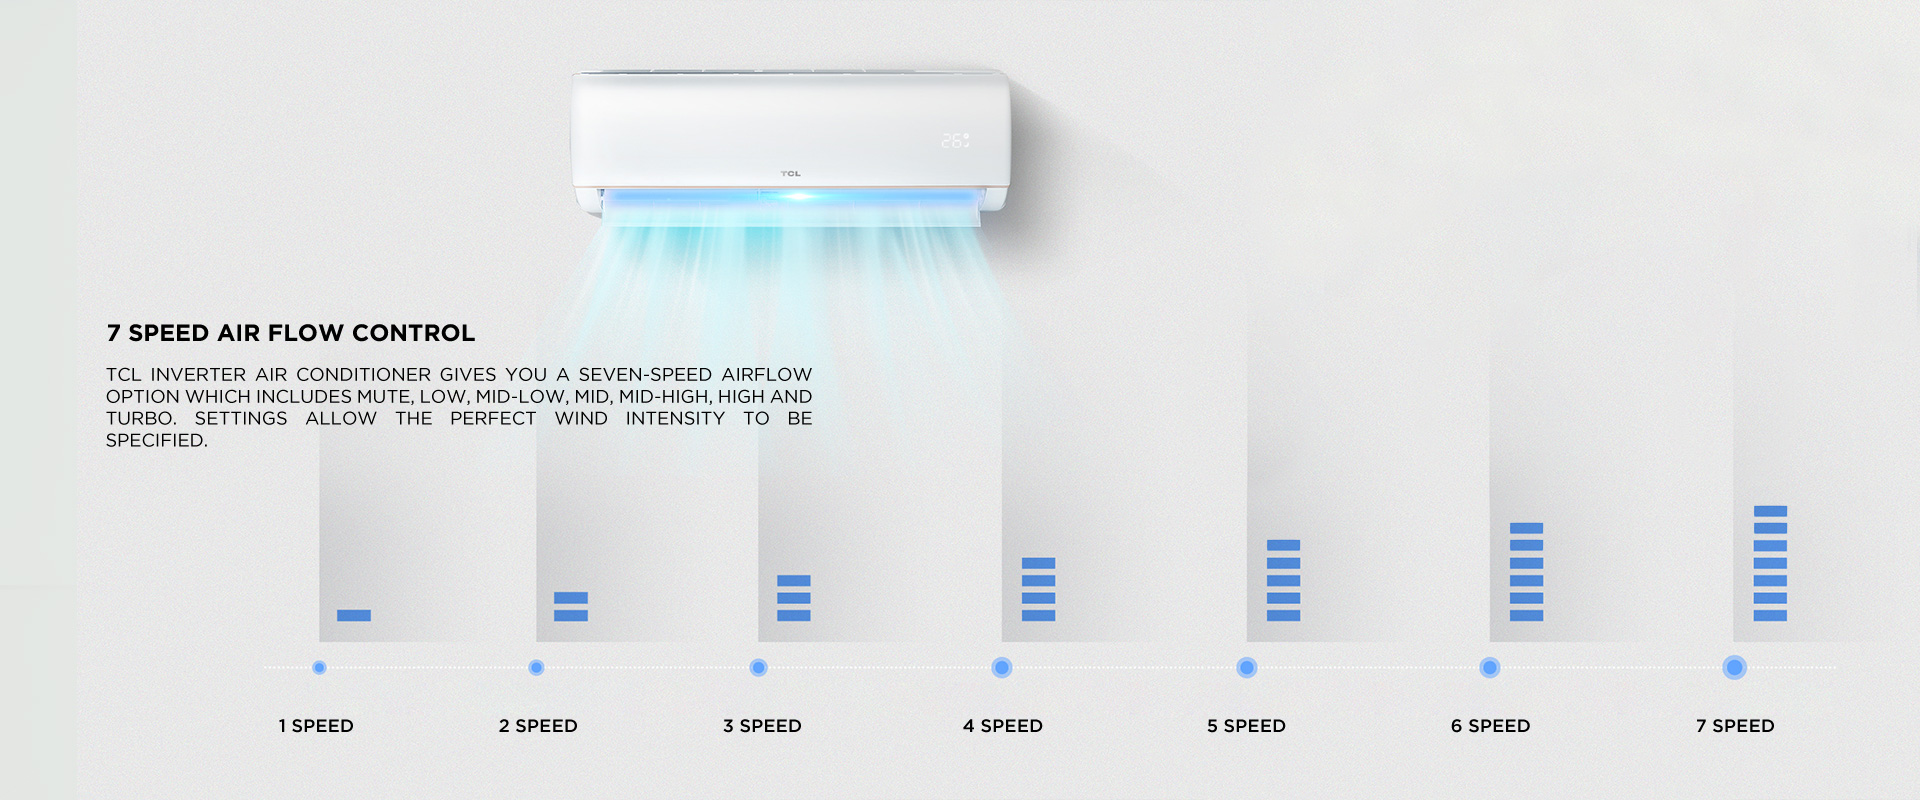 5 speed air flow control - TCL Inverter Air Conditioner gives you a five-speed airflow option which includes Super / High / Medium / Low / Quiet speed settings allow the perfect wind intensity to be specified.